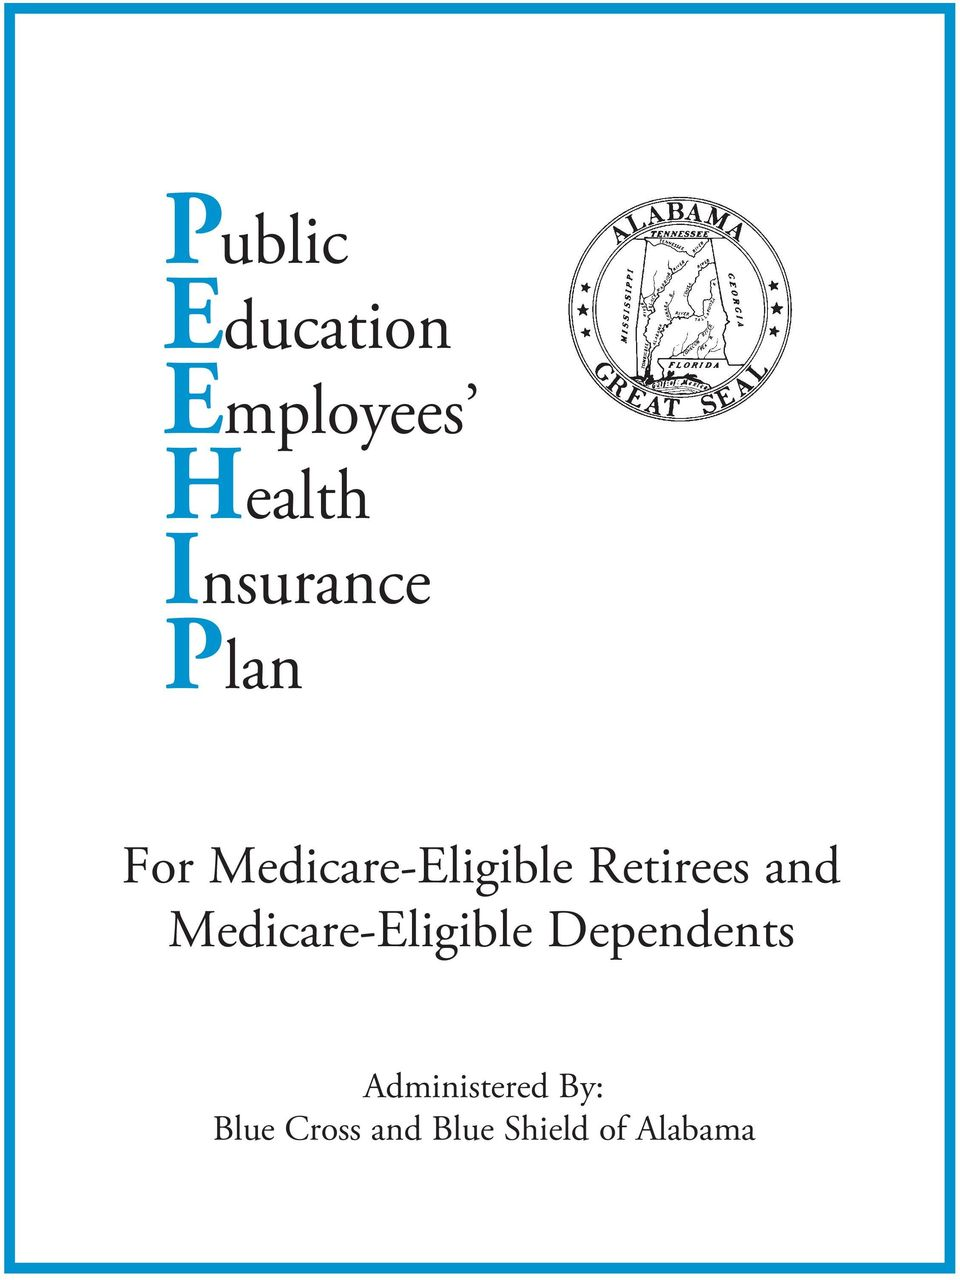 Public Education Employees Health Insurance Plan  Pdf. Scottsdale Window Cleaning Directv Vs Uverse. Wisconsin Online Courses Mercedes E550 4matic. Safe High Yield Investments Help Plan A Trip. Open Powerpoint File Online Estub Good Sam. Non Warrantable Condo Loans Acme Packet Sbc. Free Seo Link Building Start A Small Buisness. Steps To Become A Psychologist. How To Do Epoxy Flooring Yourself